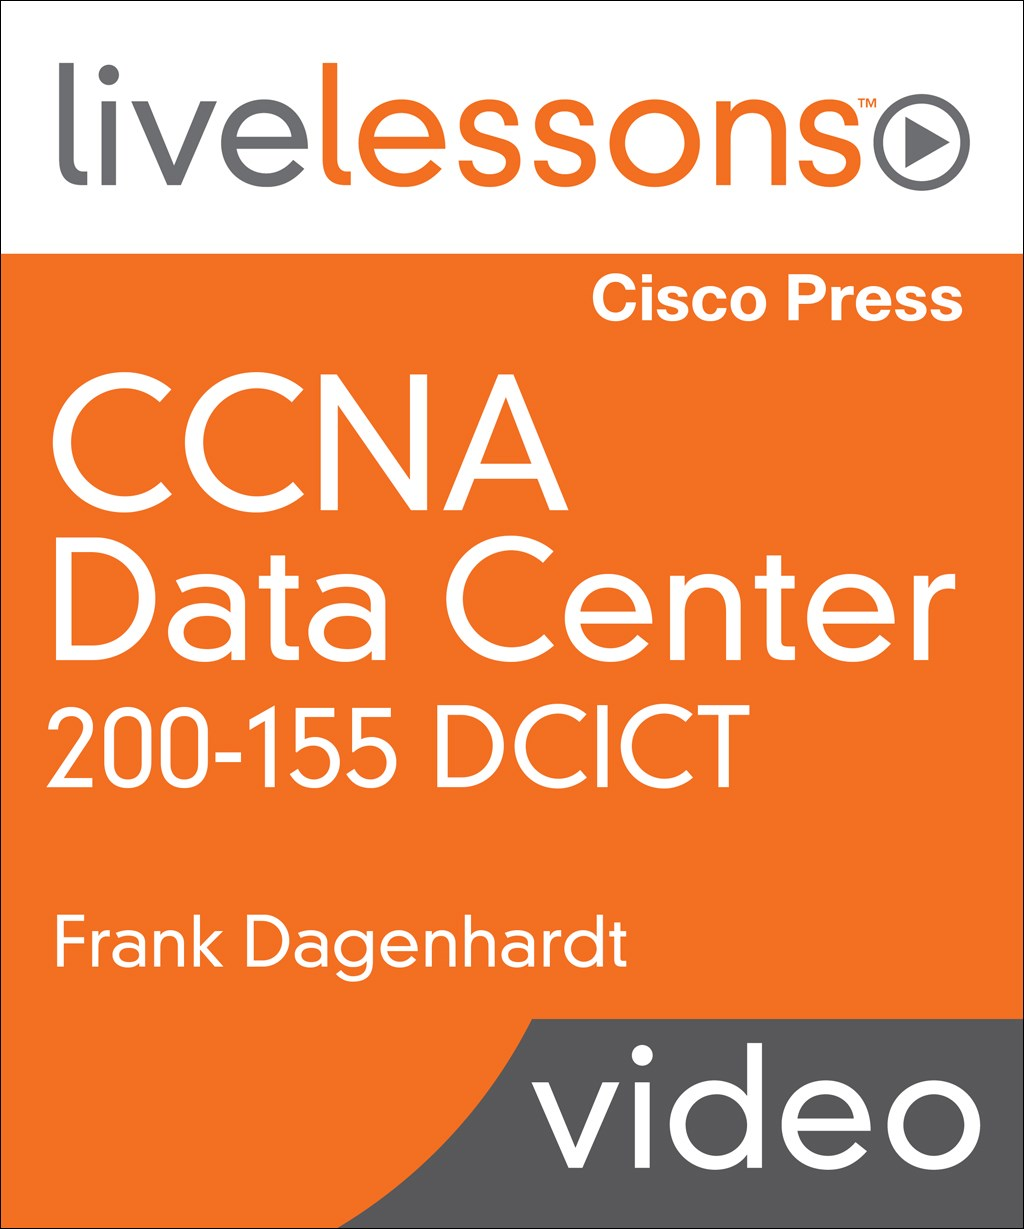 CCNA Data Center DCICT 200-155 LiveLessons